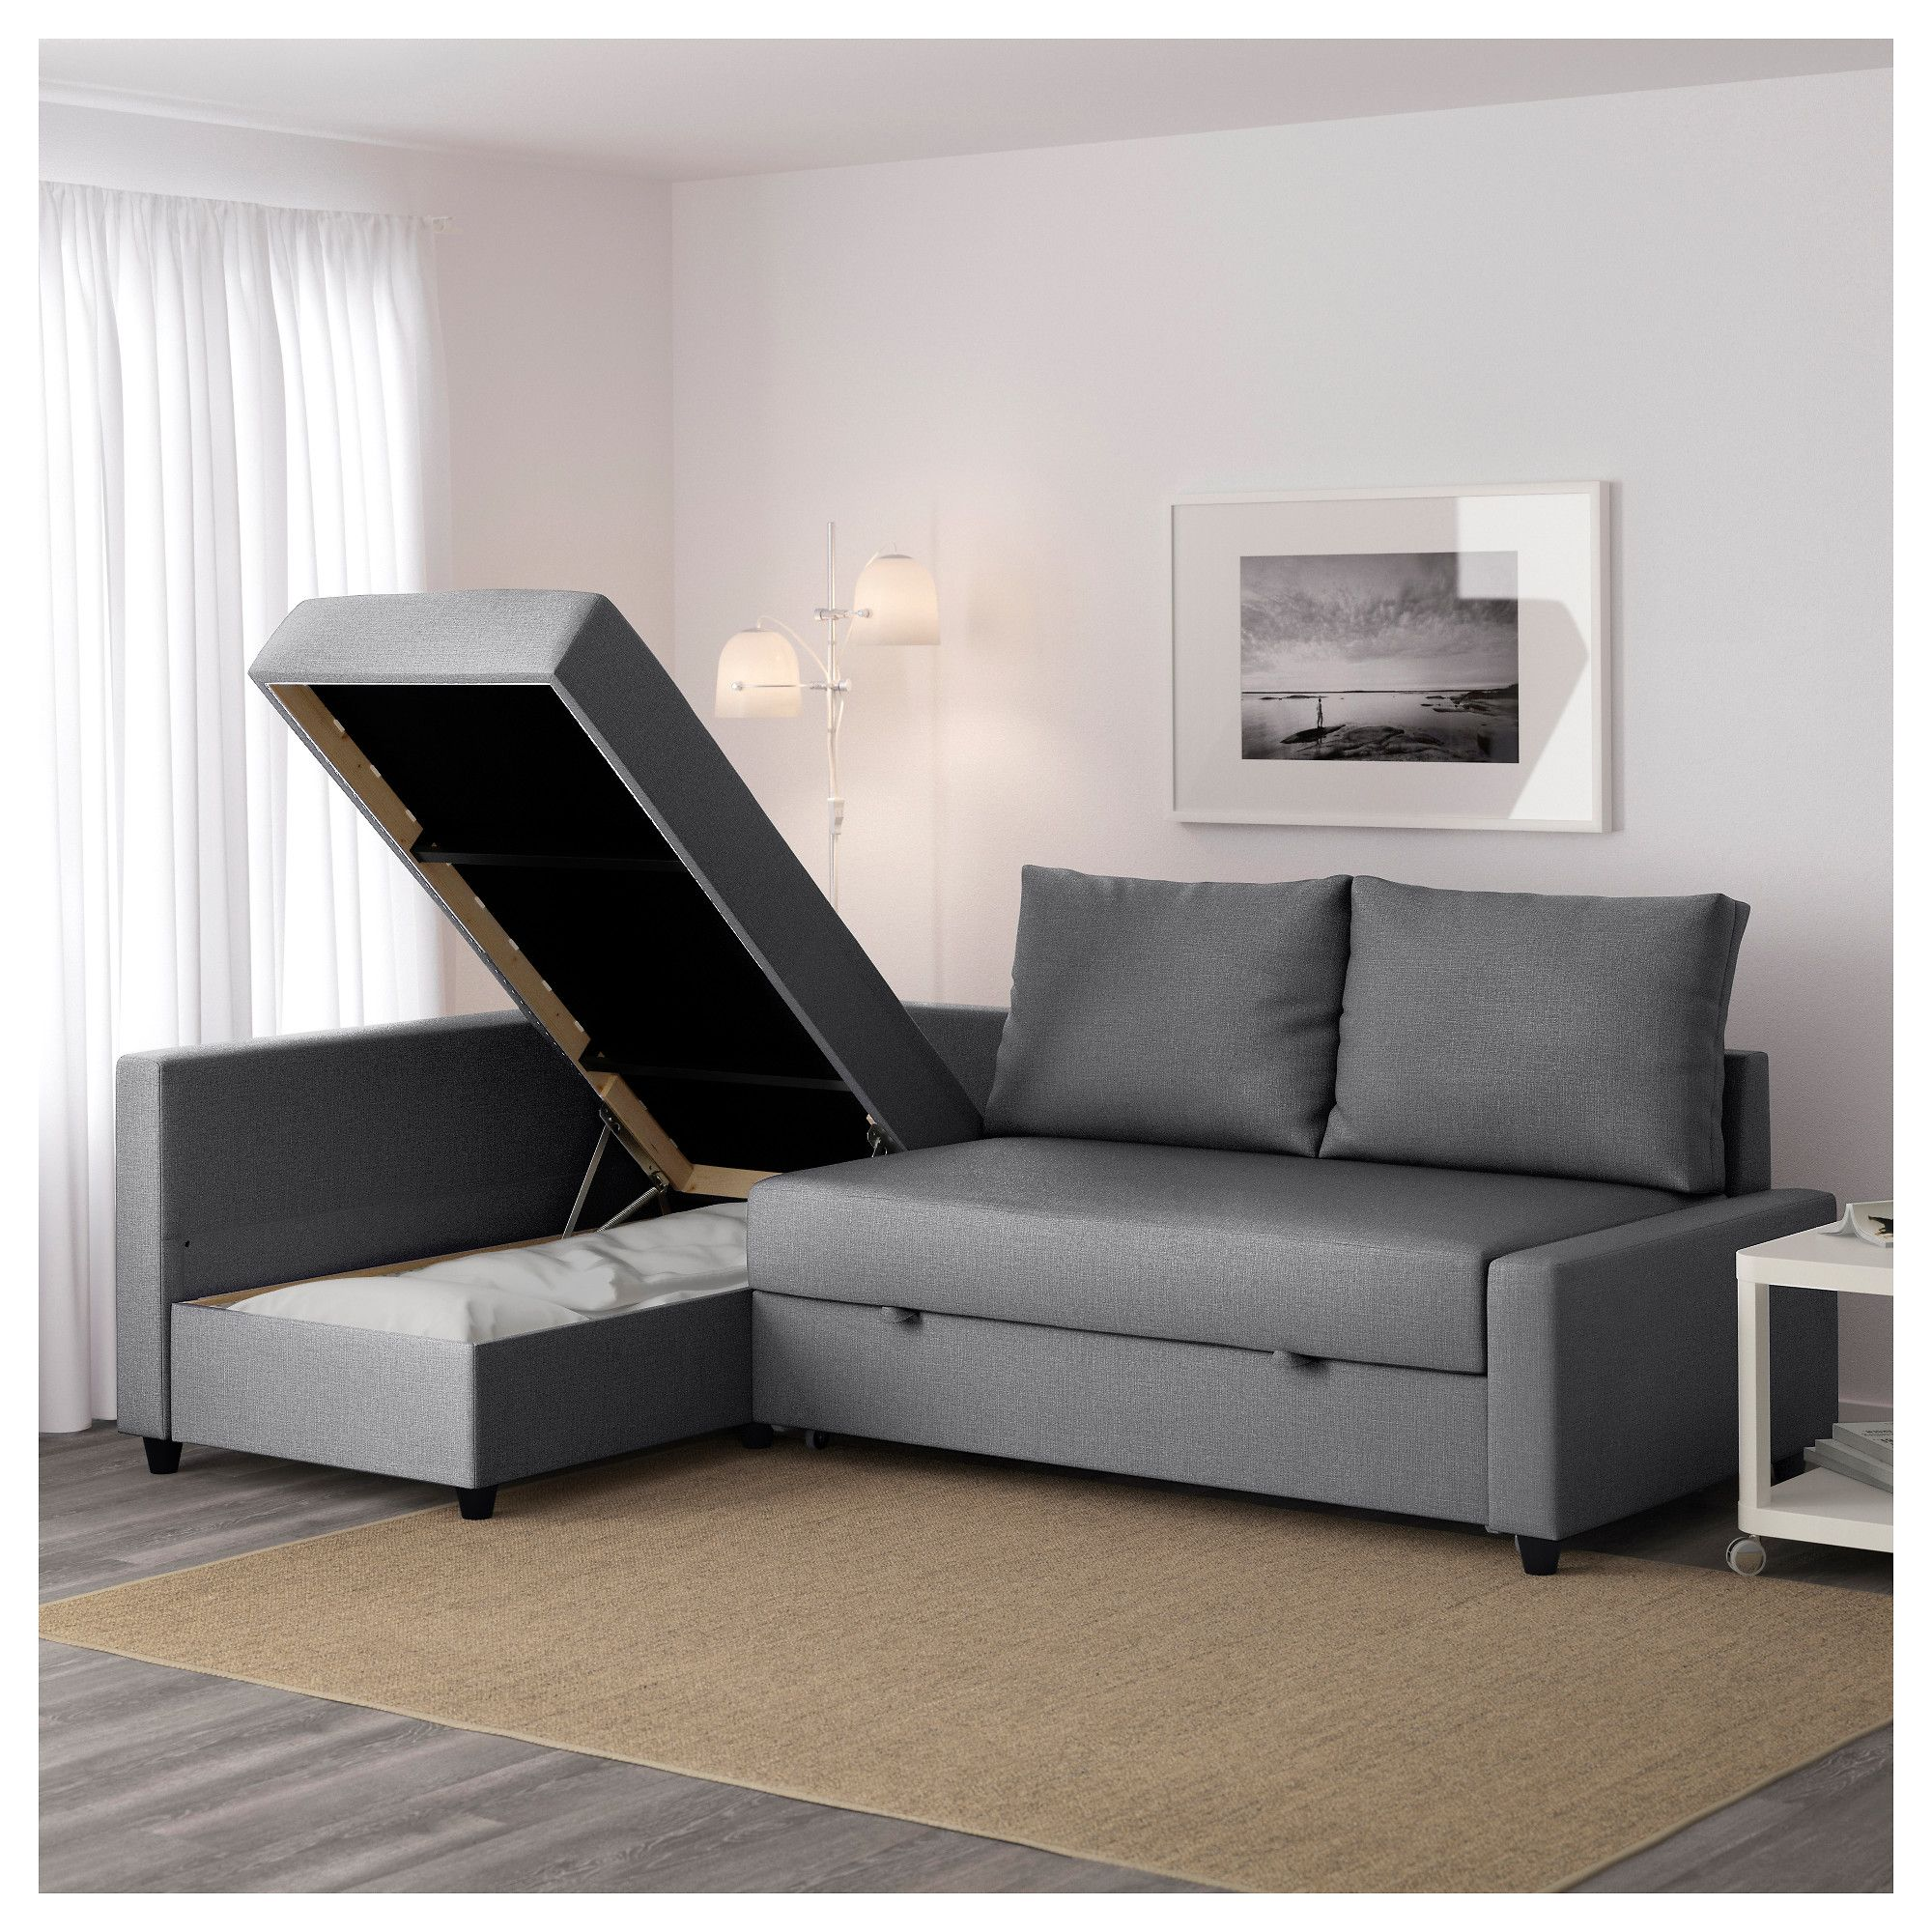 Shop For Furniture Home Accessories More Sofa Bed With